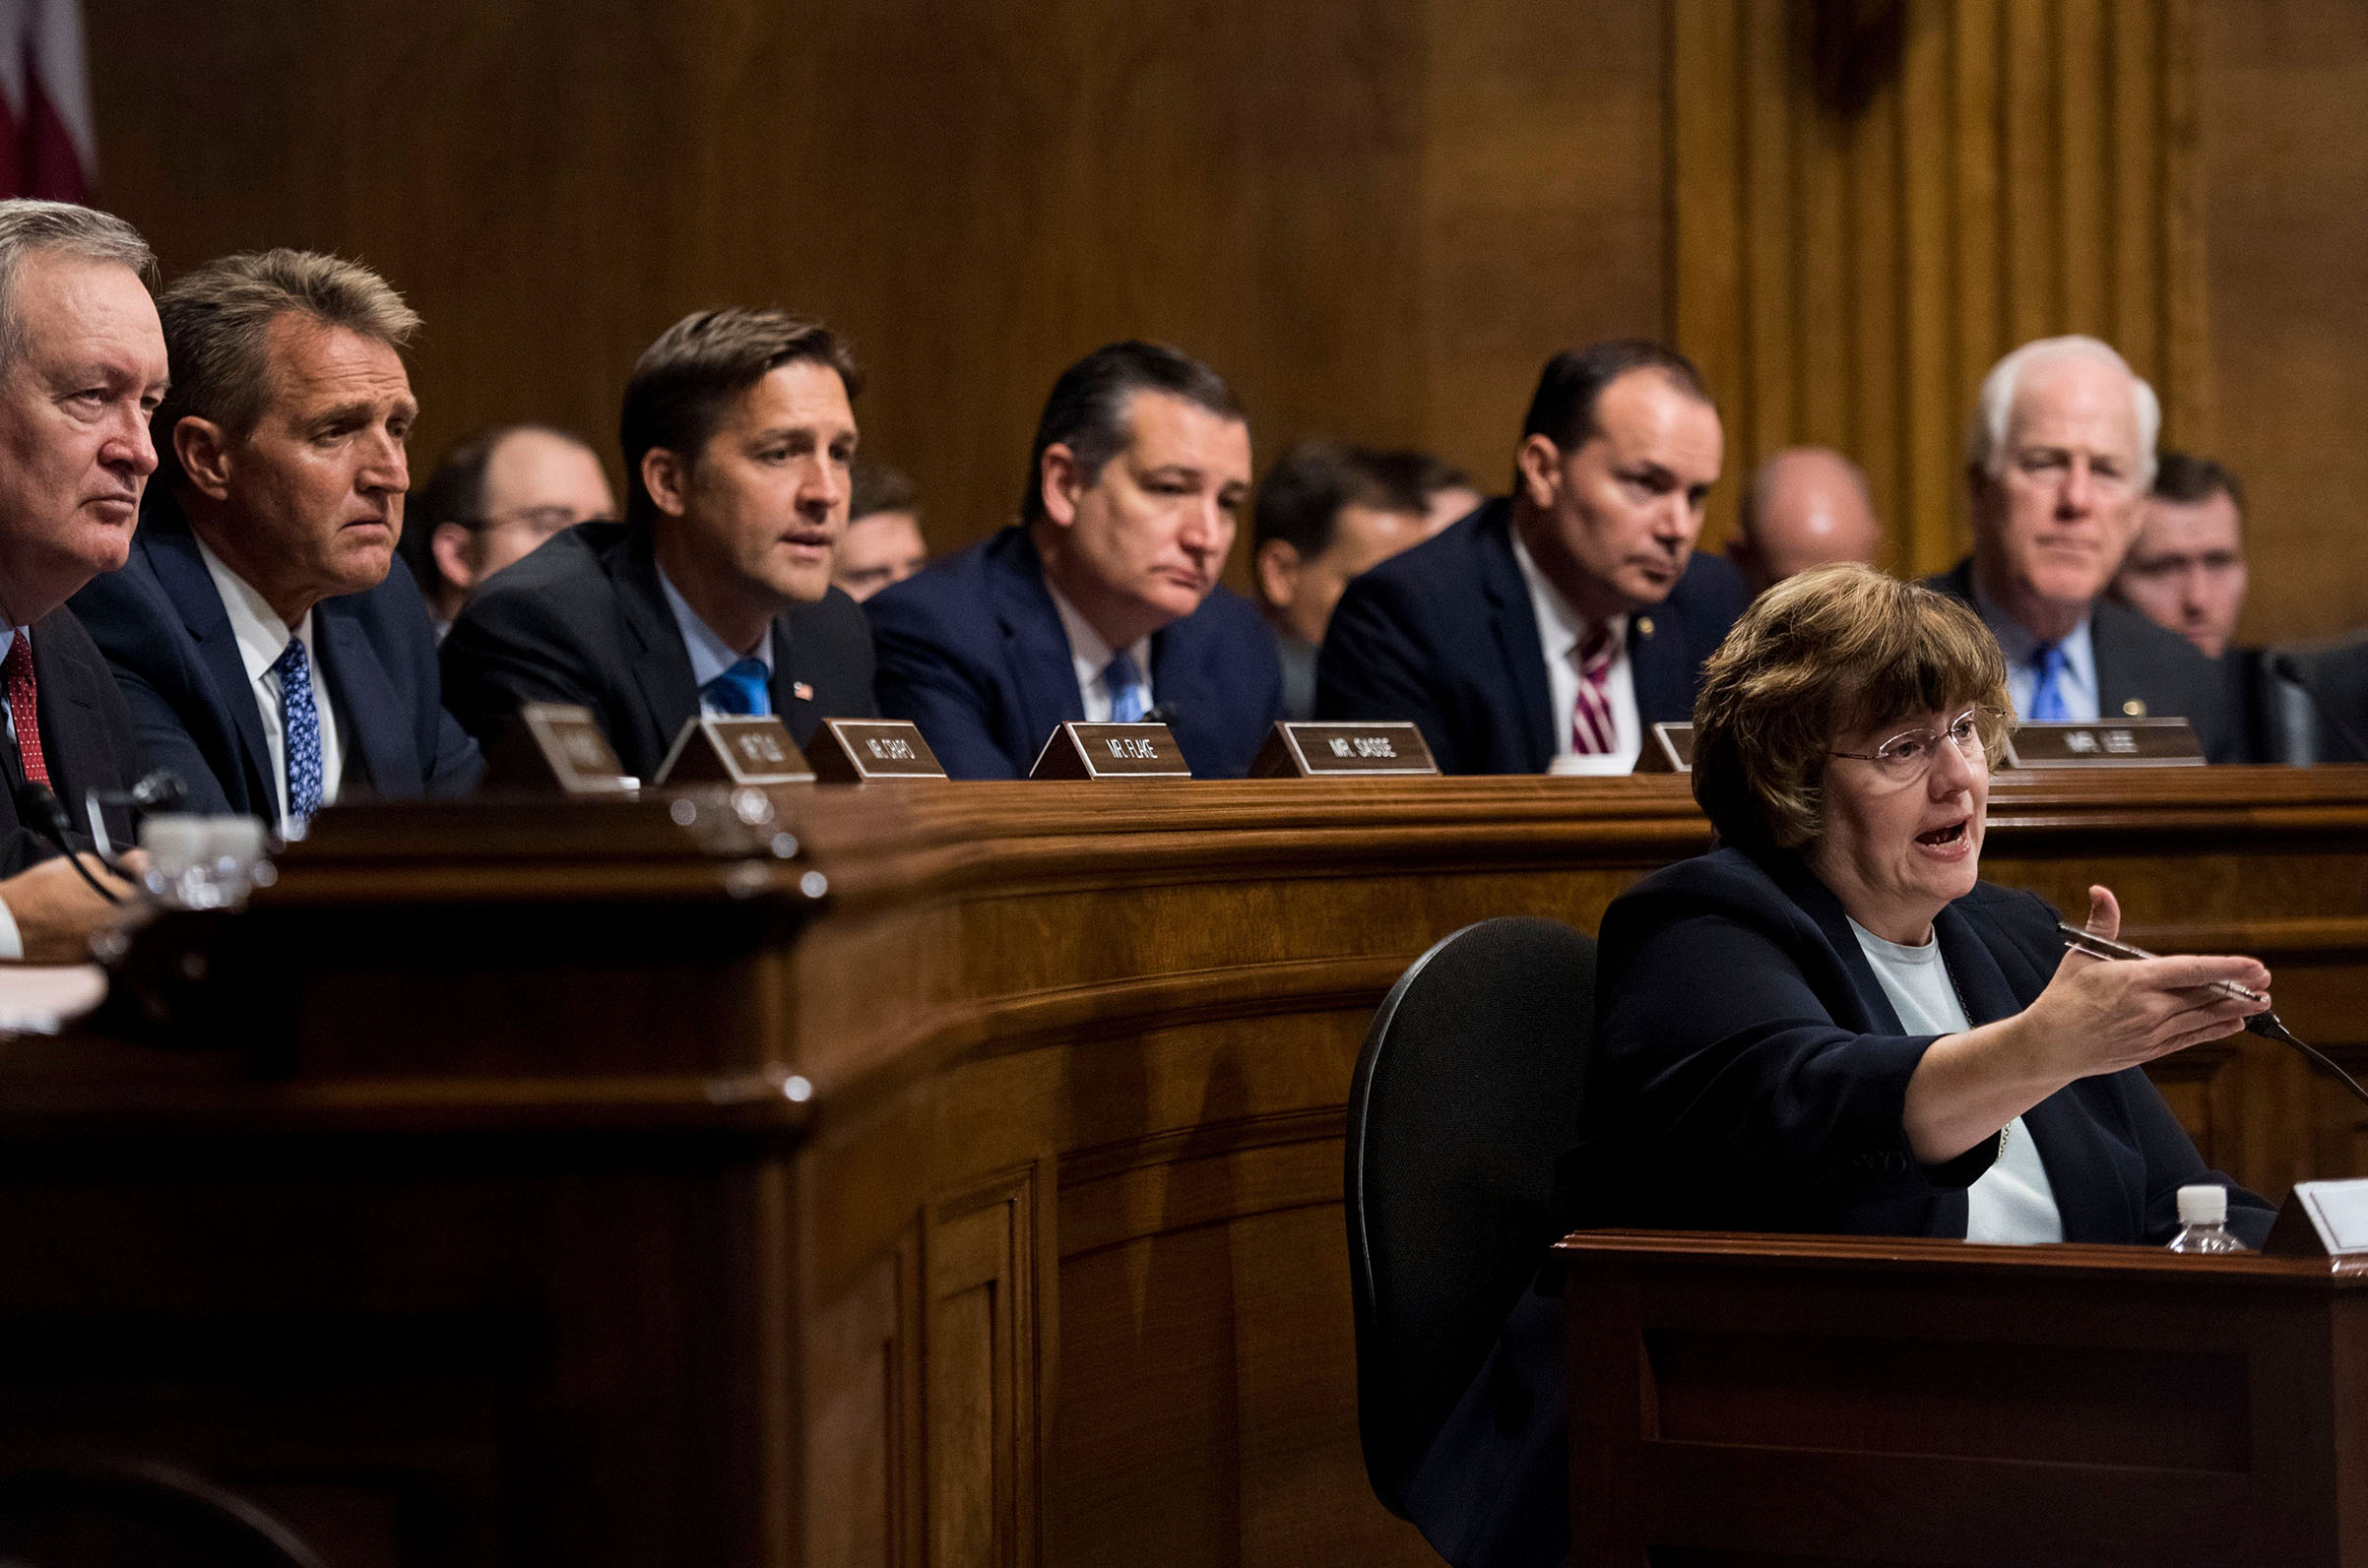 Phoenix prosecutor Rachel Mitchell questions Christine Blasey Ford as Senators, from left, Sen. Mike Crapo, R-Idaho, Sen. Jeff Flake, R-Ariz., Sen. Ben Sasse, R-Neb., Sen. Ted Cruz, R-Texas, Sen. Mike Lee, R-Utah., and Sen. John Cornyn, R-Texas, listen during the Senate Judiciary Committee hearing for Supreme Court nominee Judge Kavanaugh.